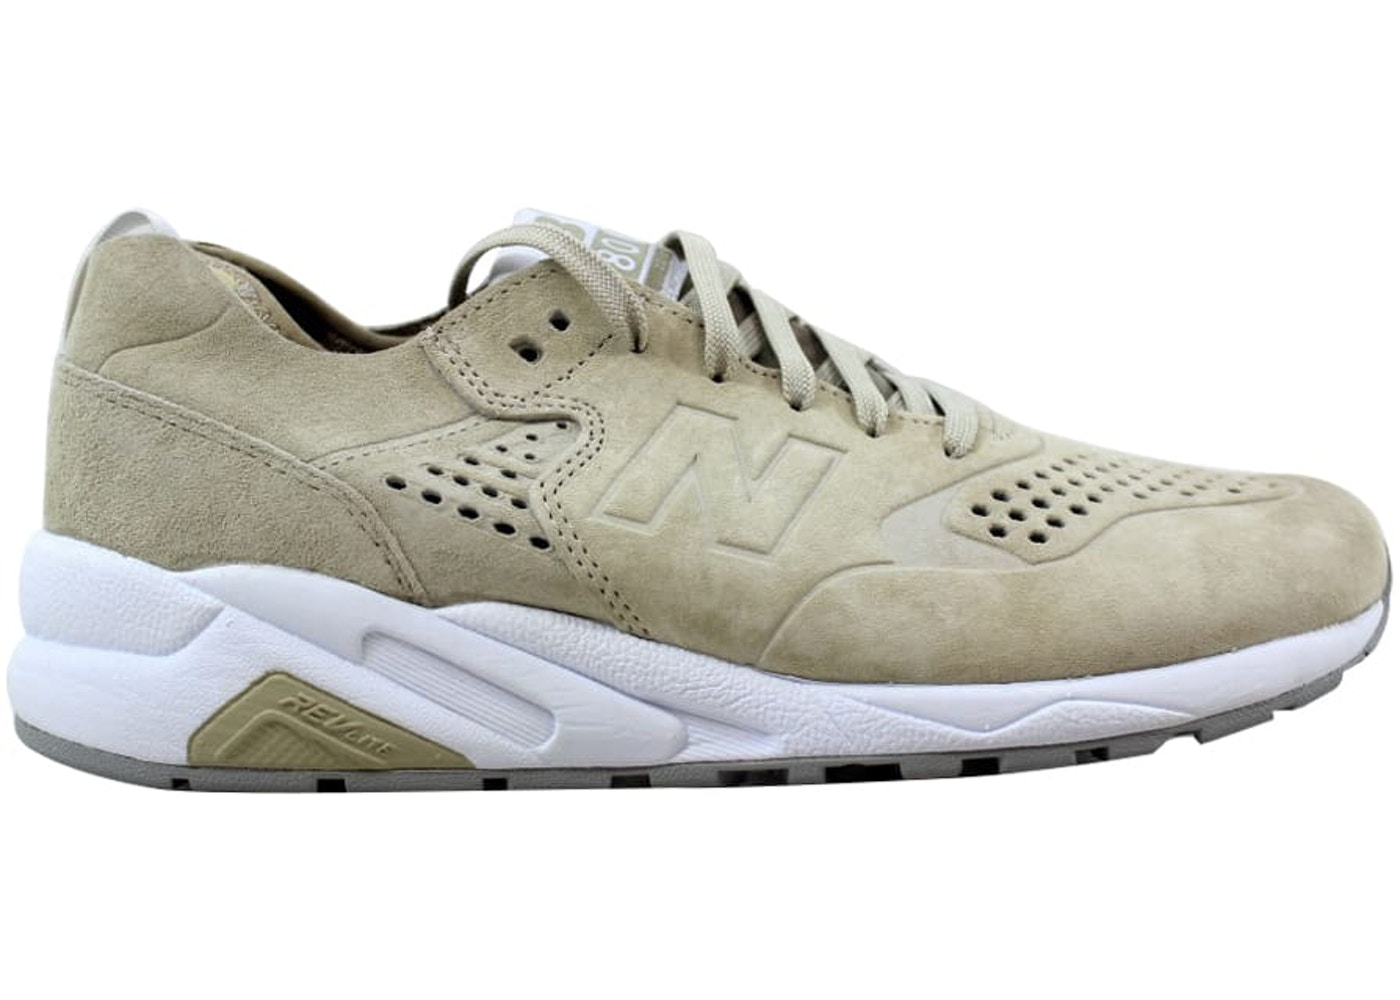 the best attitude c2a10 ac1be New Balance 580 Deconstructed Tan/Beige